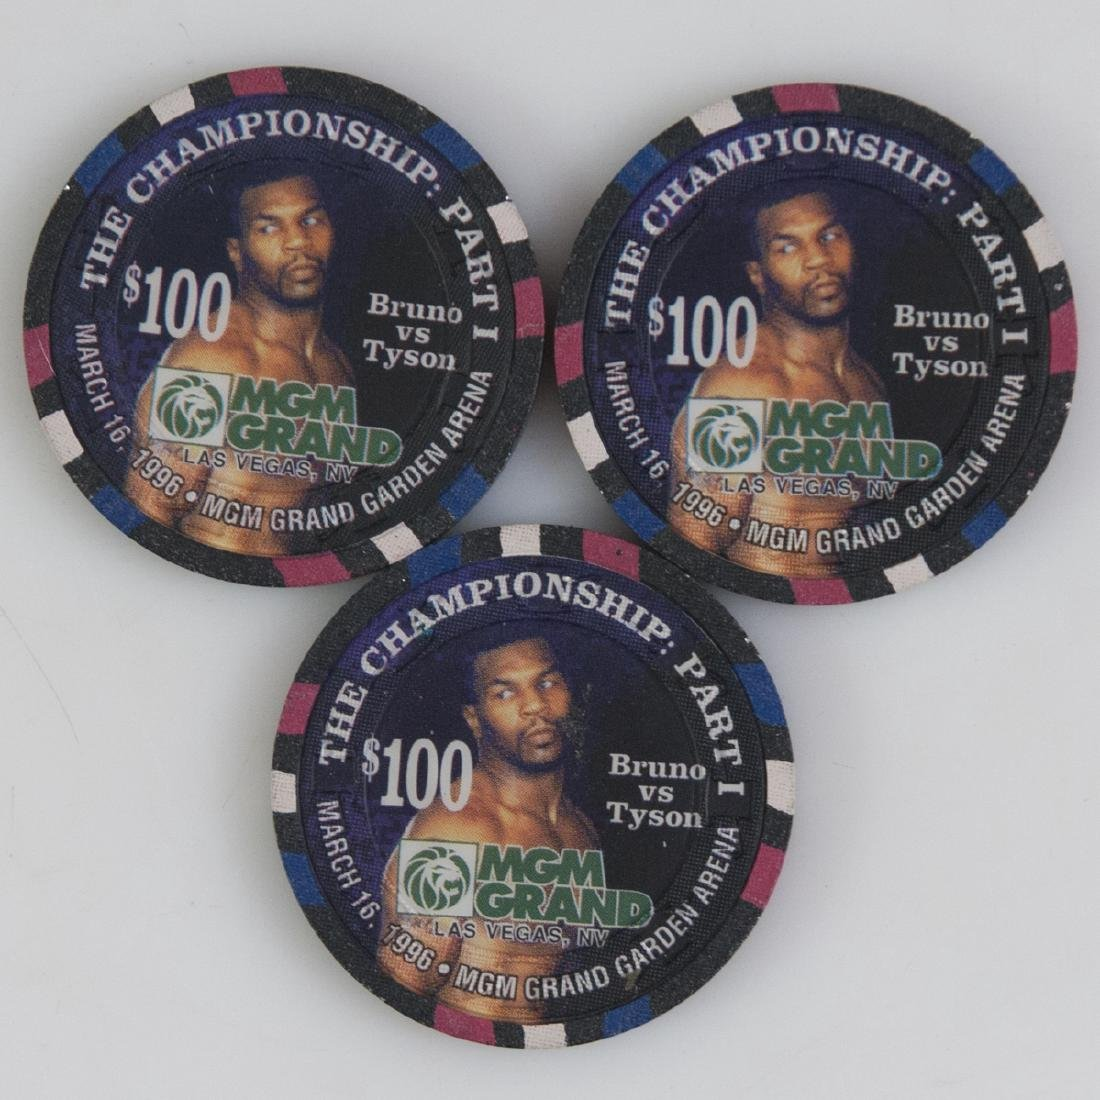 "MGM Grand 1996 ""The Championship Part I"" Chips"